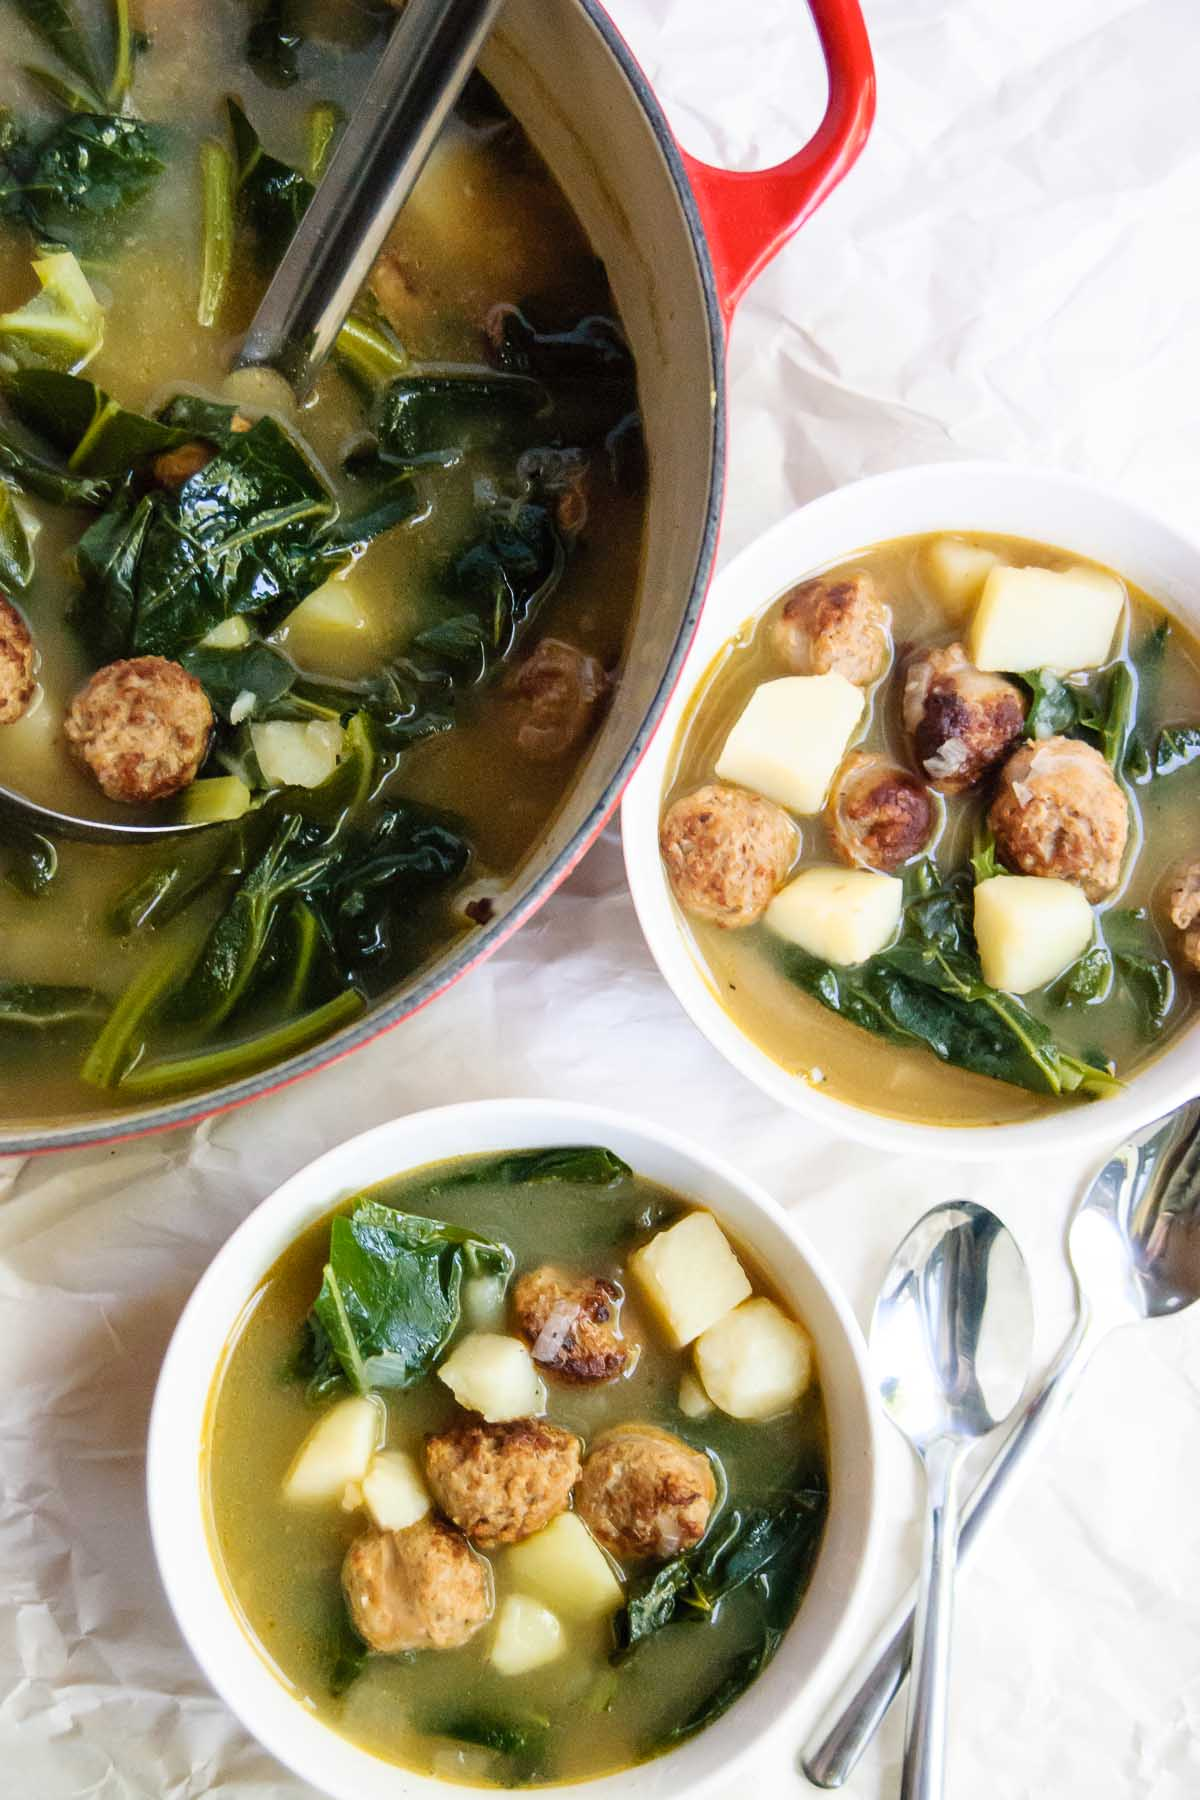 Hearty sausages, potatoes and collard greens are here to fill you up and warm your soul in this PortugueseCaldo Verde Soup recipe! One pot, easy to make and great as leftovers for the week!